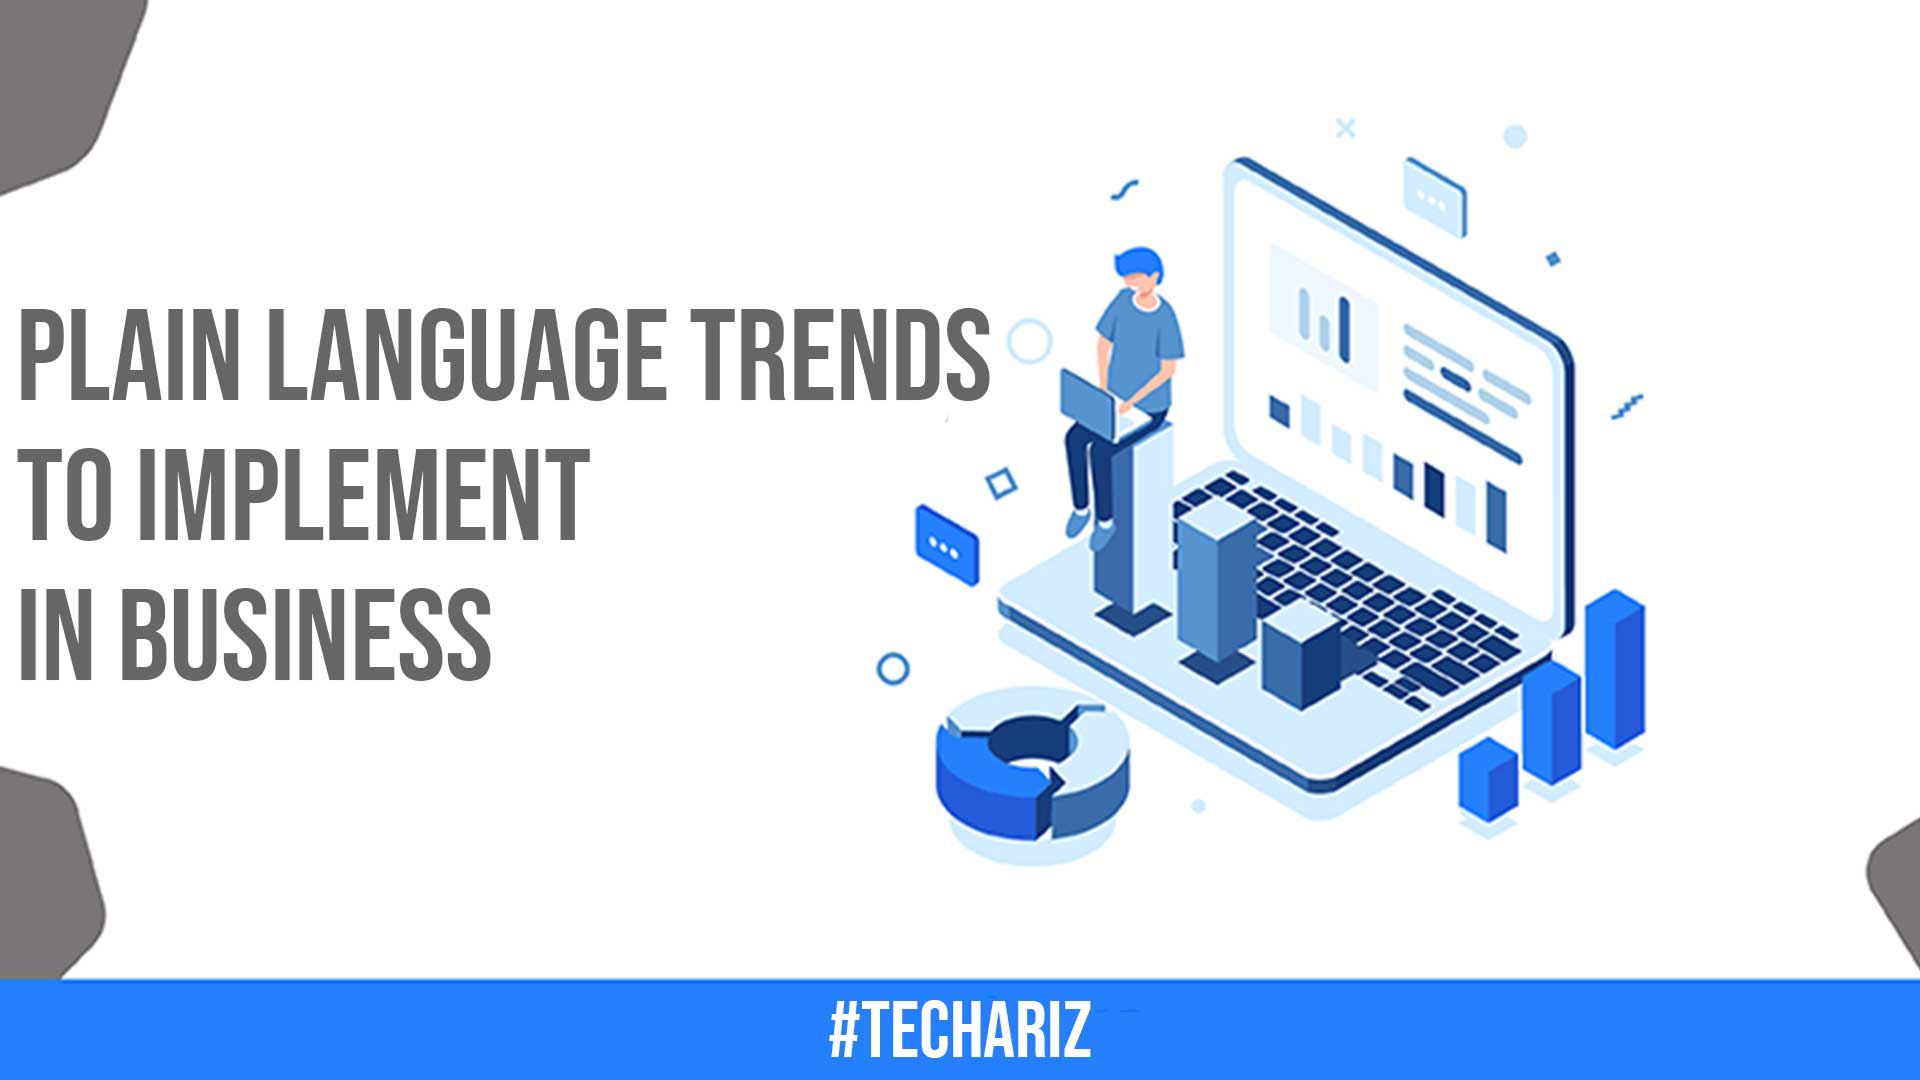 Plain Language Trends To Implement In Business